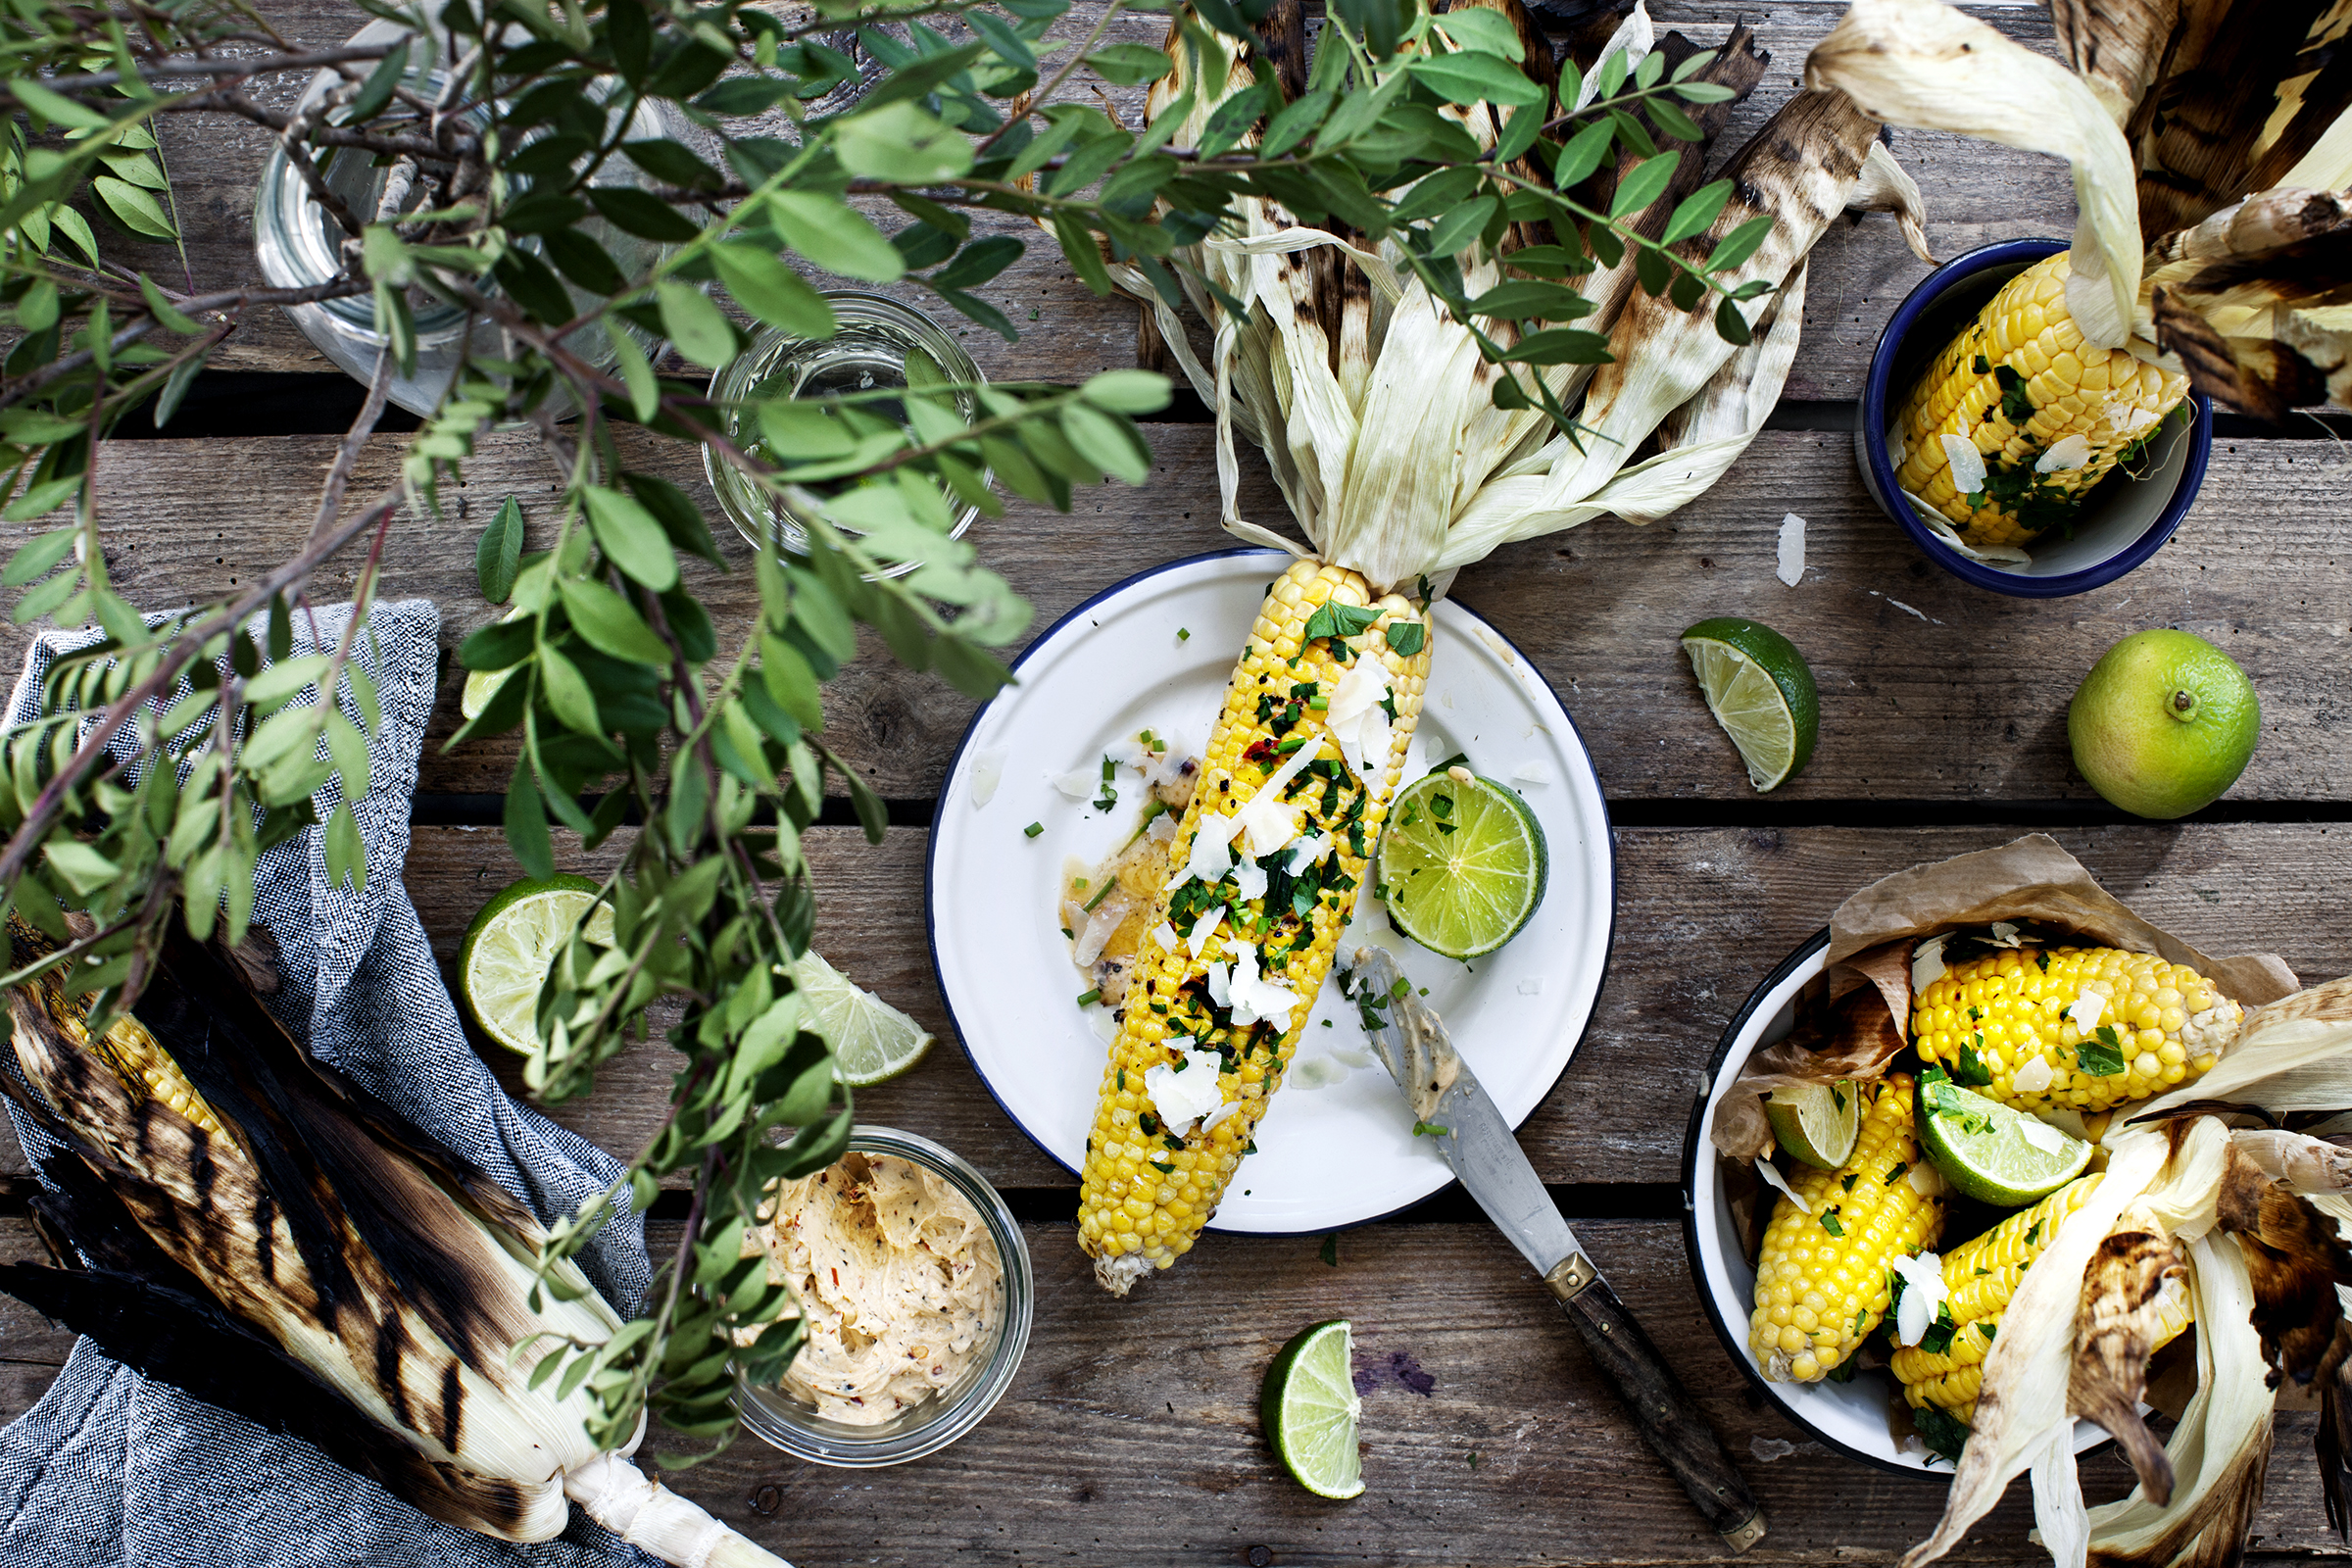 Recipe: Grilled Corn with Chili & Lime Butter